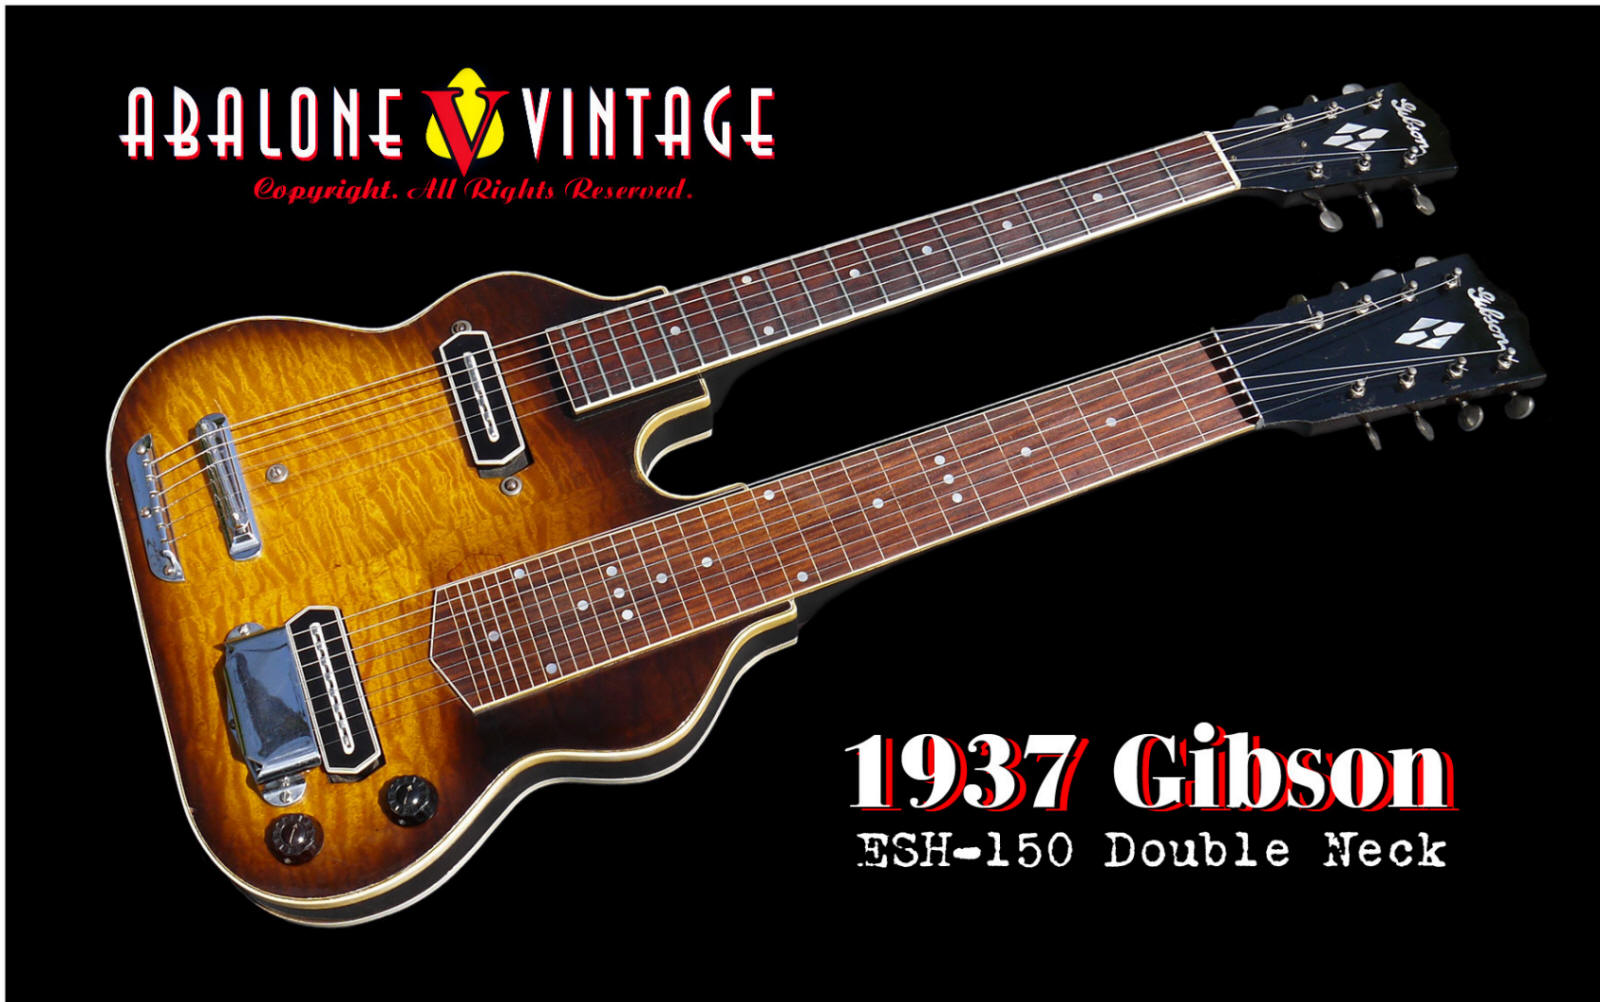 1937 Gibson ESH-150 double neck guitar 1938 Pre-war